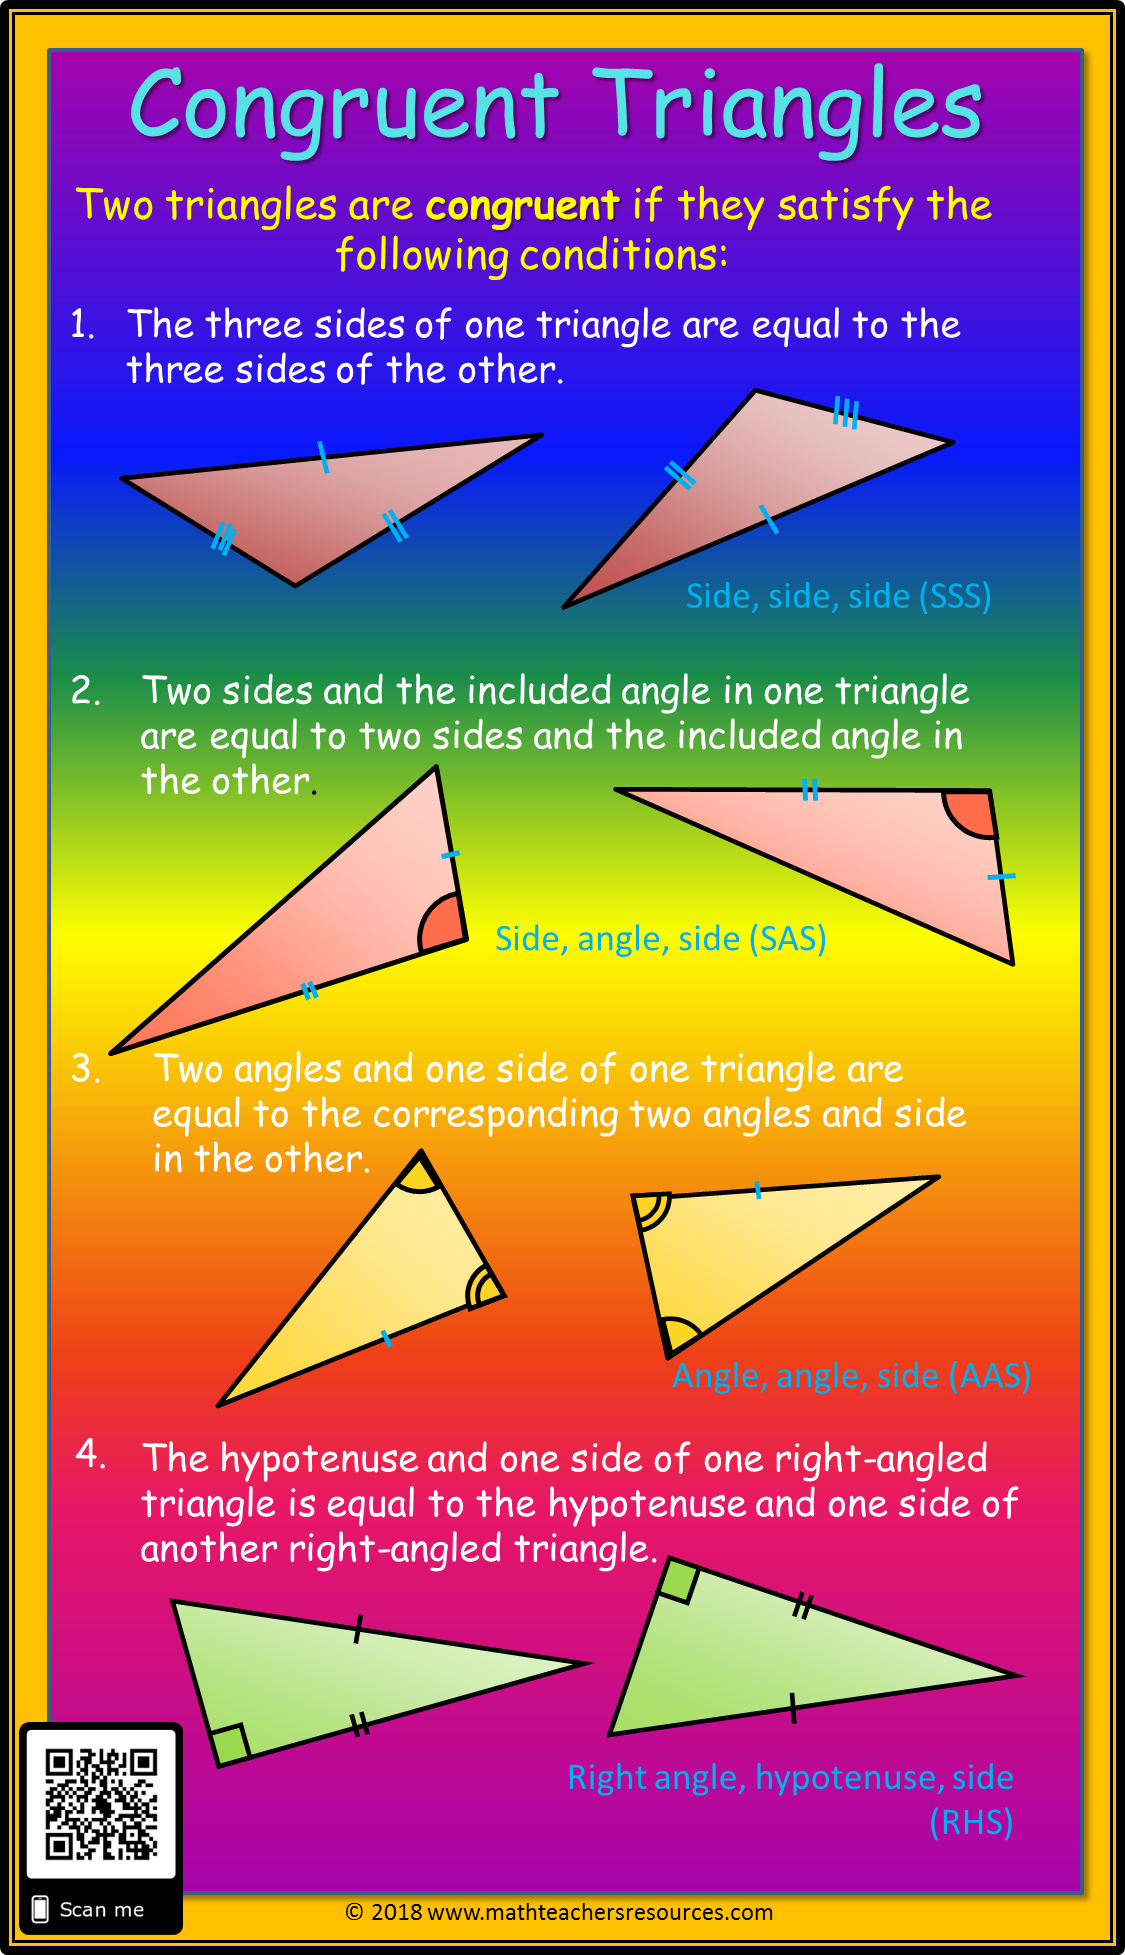 hight resolution of Congruent Triangles   Triangle rules